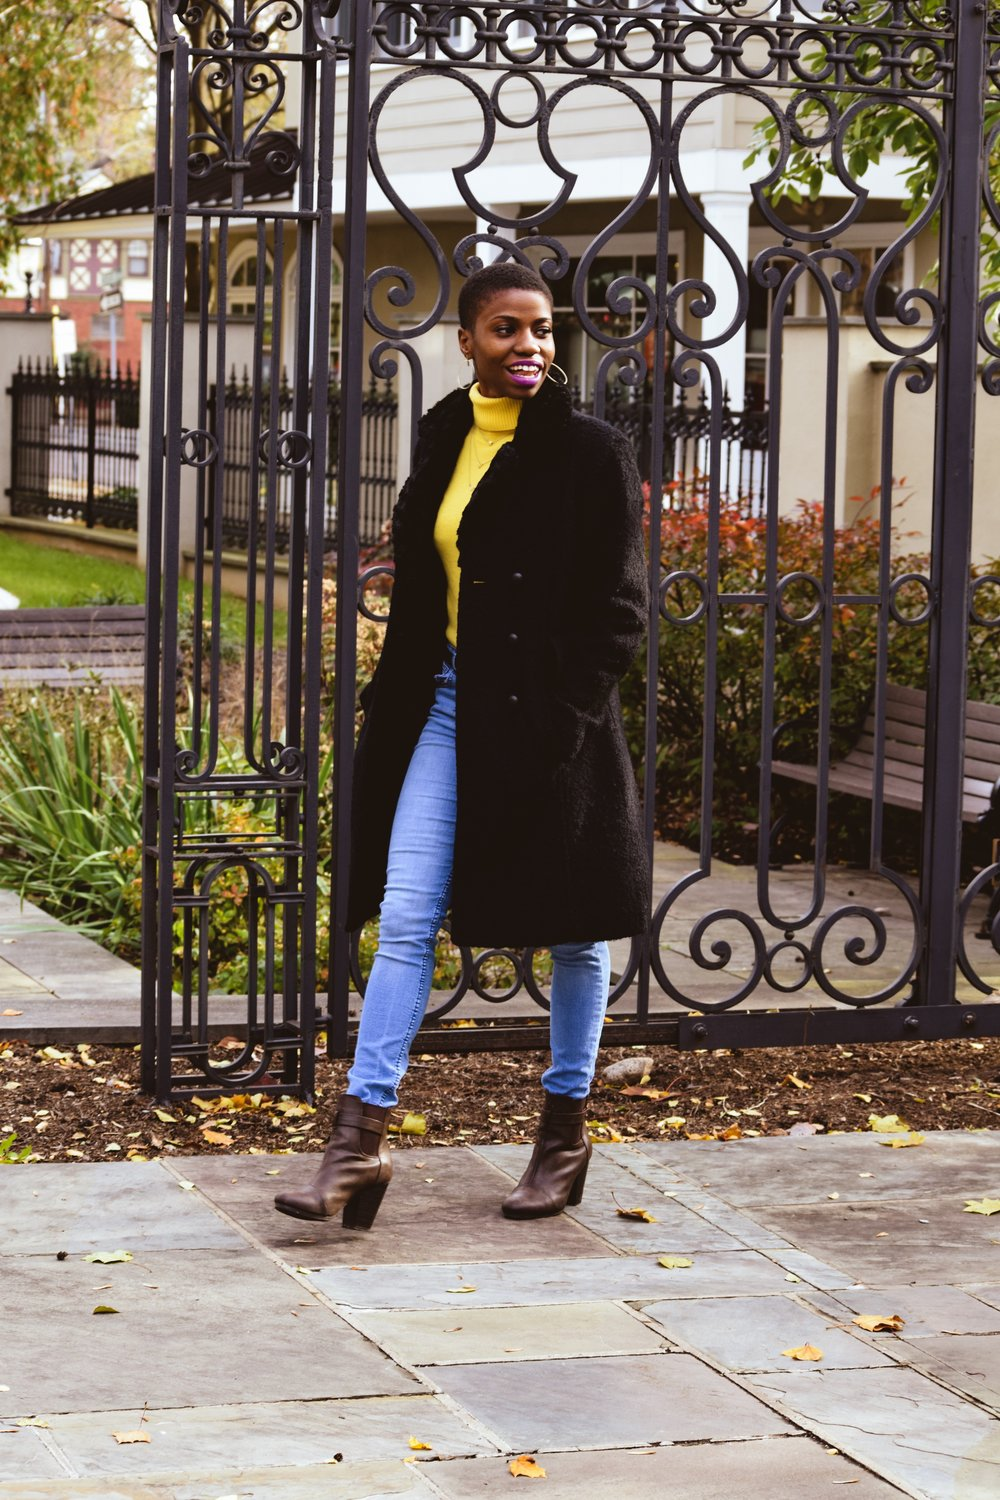 Walking into the weekend like.. ---------------------------------------------- Sweater: Lord and Taylor (Thrifted) from Clothes Mentor Jeans: Forever 21 (Thrifted) from Plato's Closet Coat: Shelli Seccal (Thrifted) from Clothes Mentor Photo: Lauren Herwig